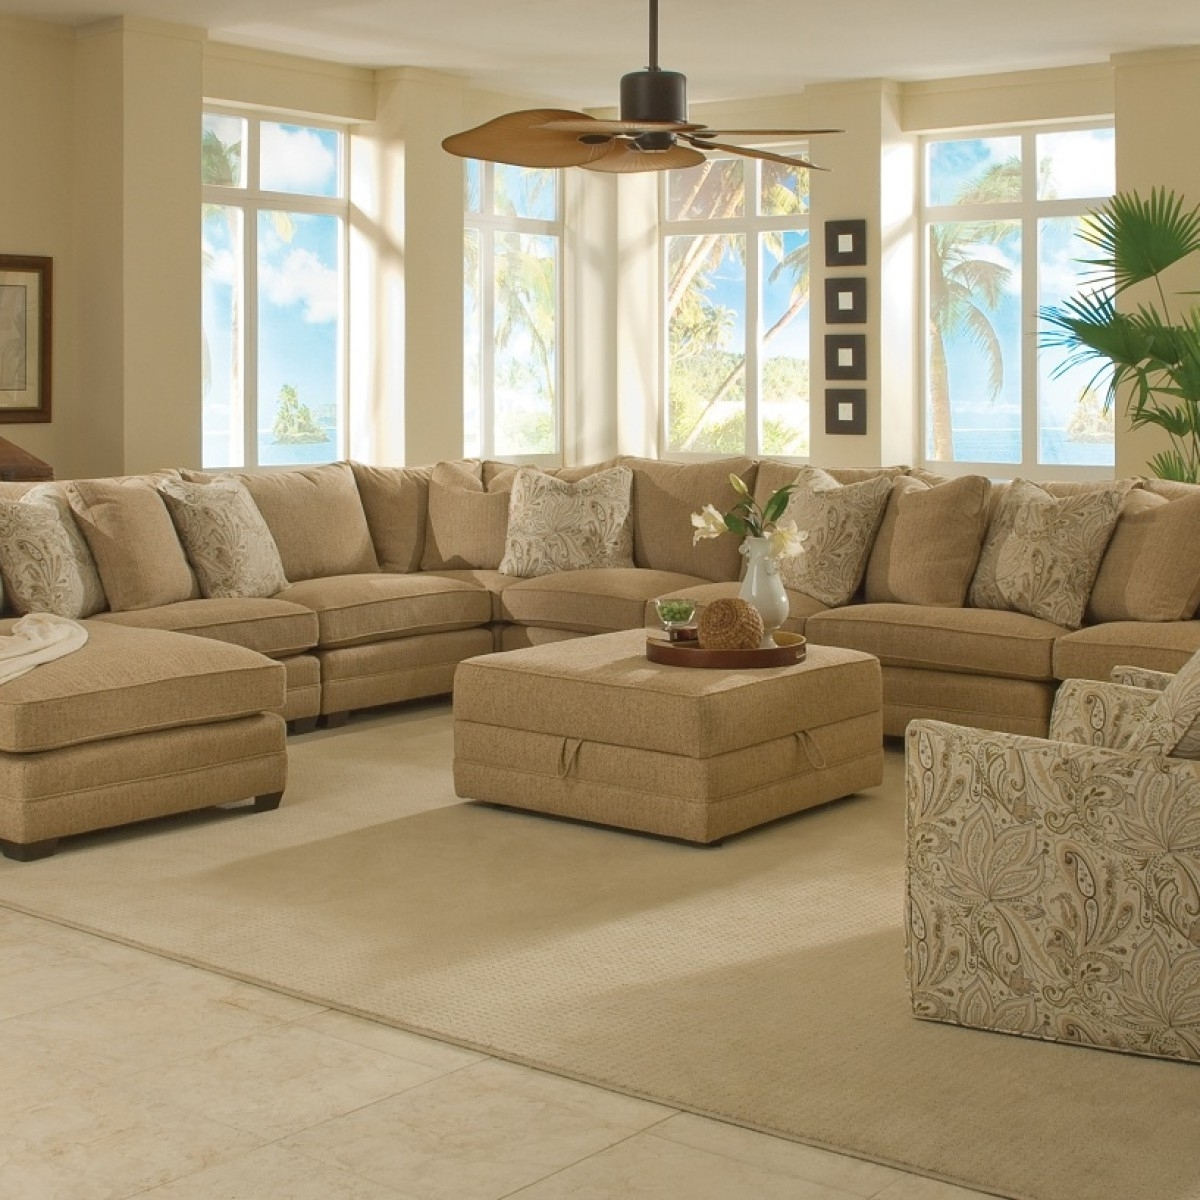 Most Popular Factors To Consider Before Buying An Extra Large Sectional Sofa In Large Sectional Sofas (View 10 of 15)